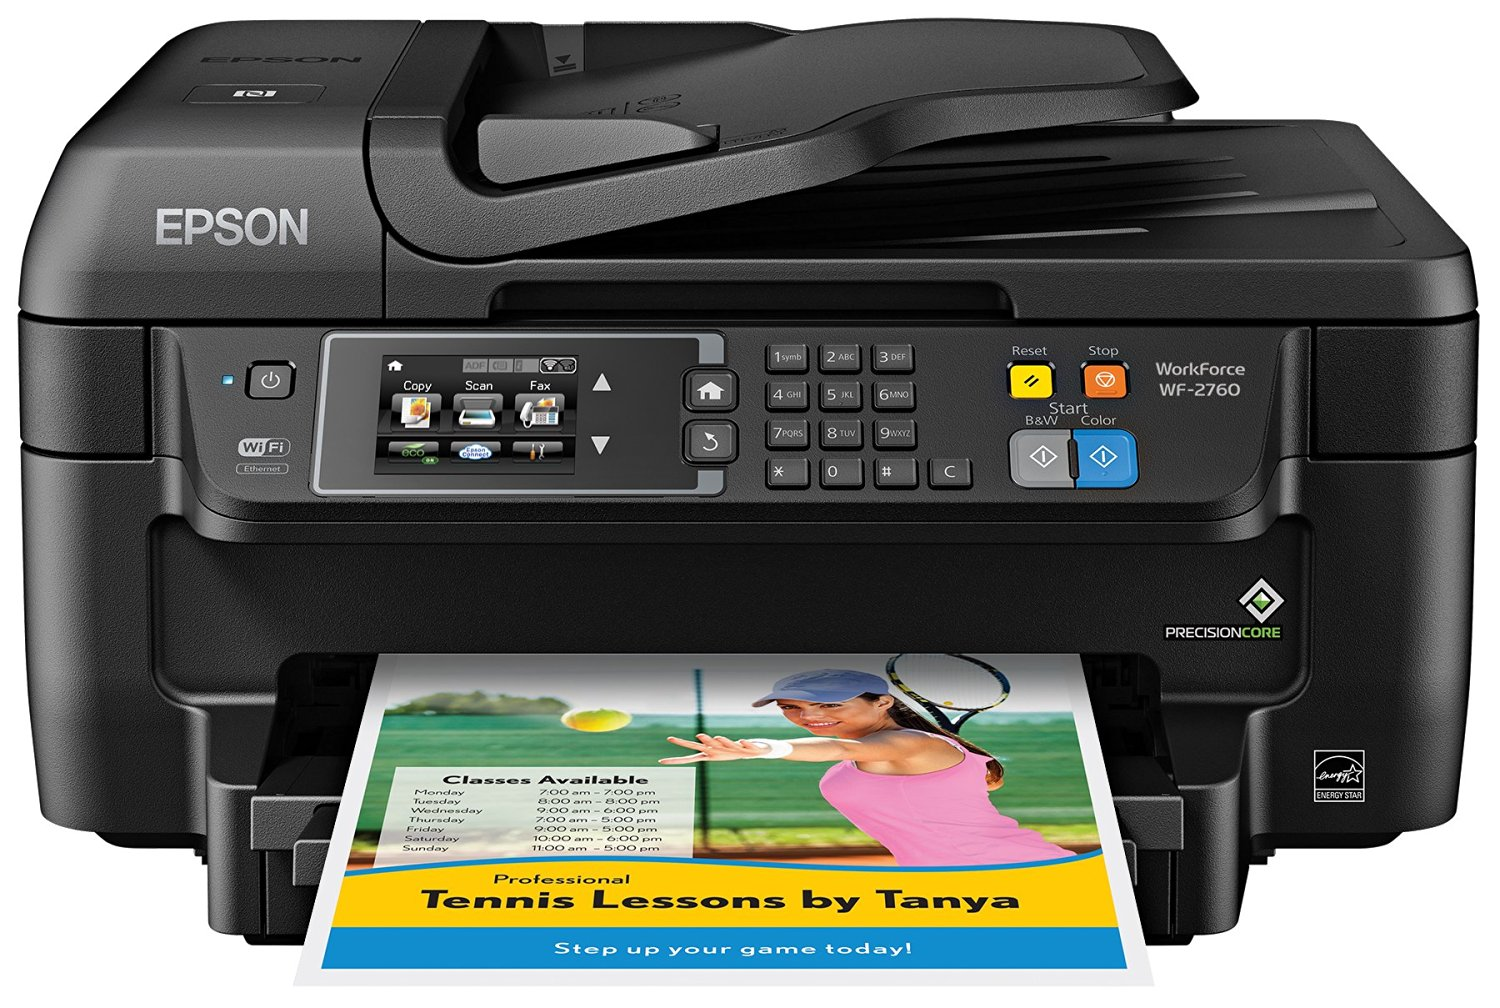 Epson Laser All-in-One Wireless Printer with Wi-Fi Direct & Smartphone and Tablet Printing